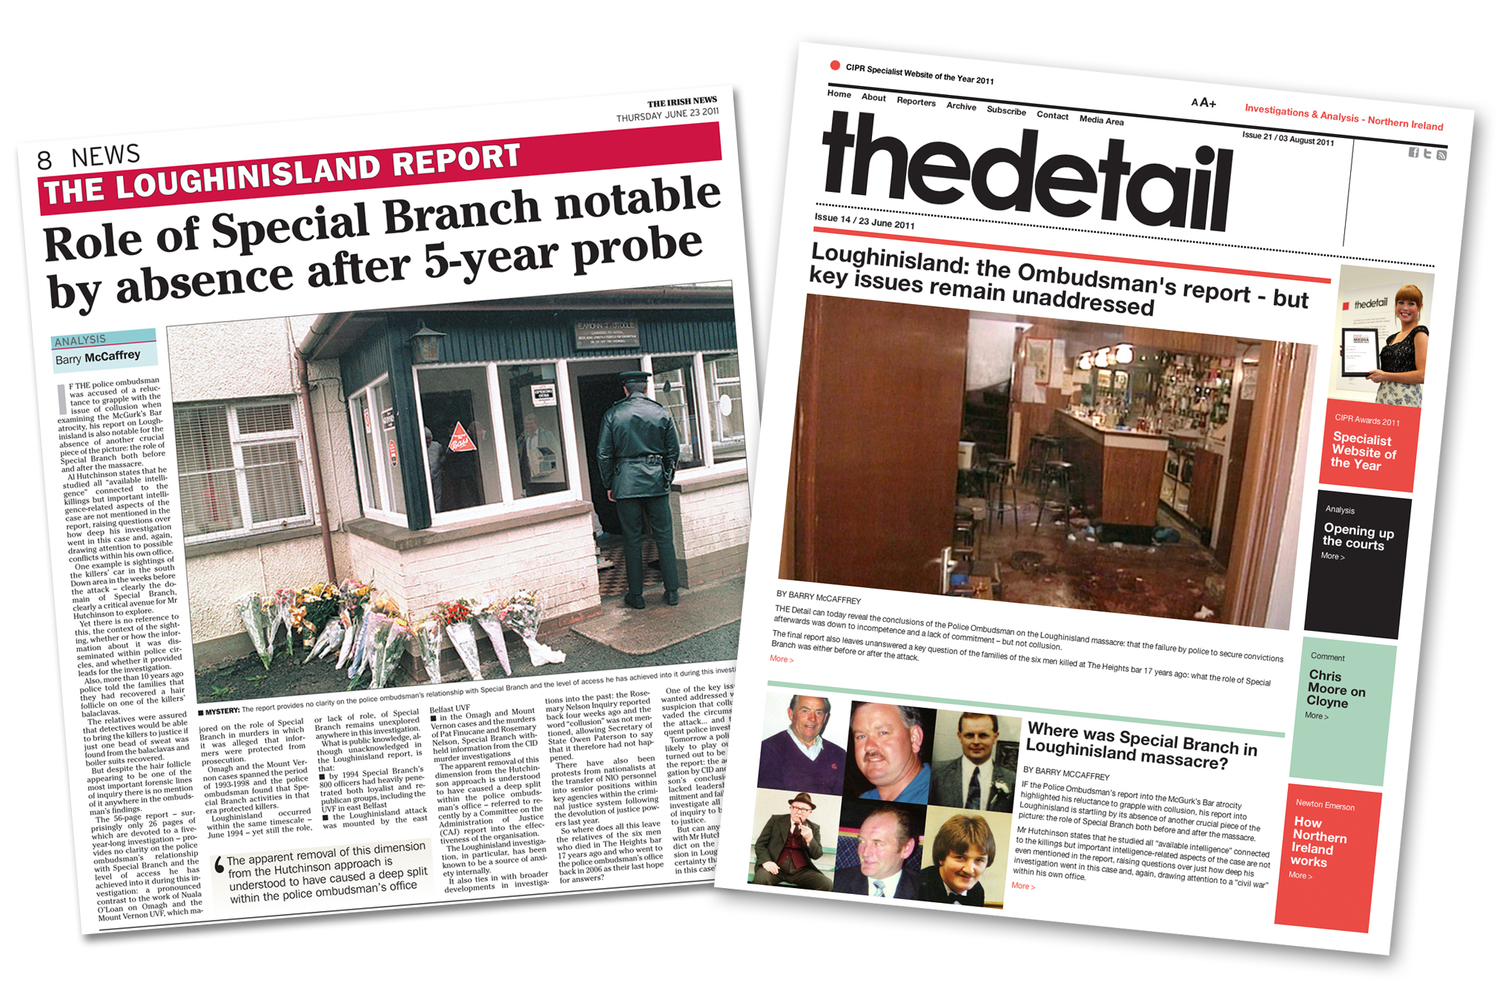 Previous Detail stories highlighting how criticism of Special Branch was omitted from the ombudsman's Loughinisland report